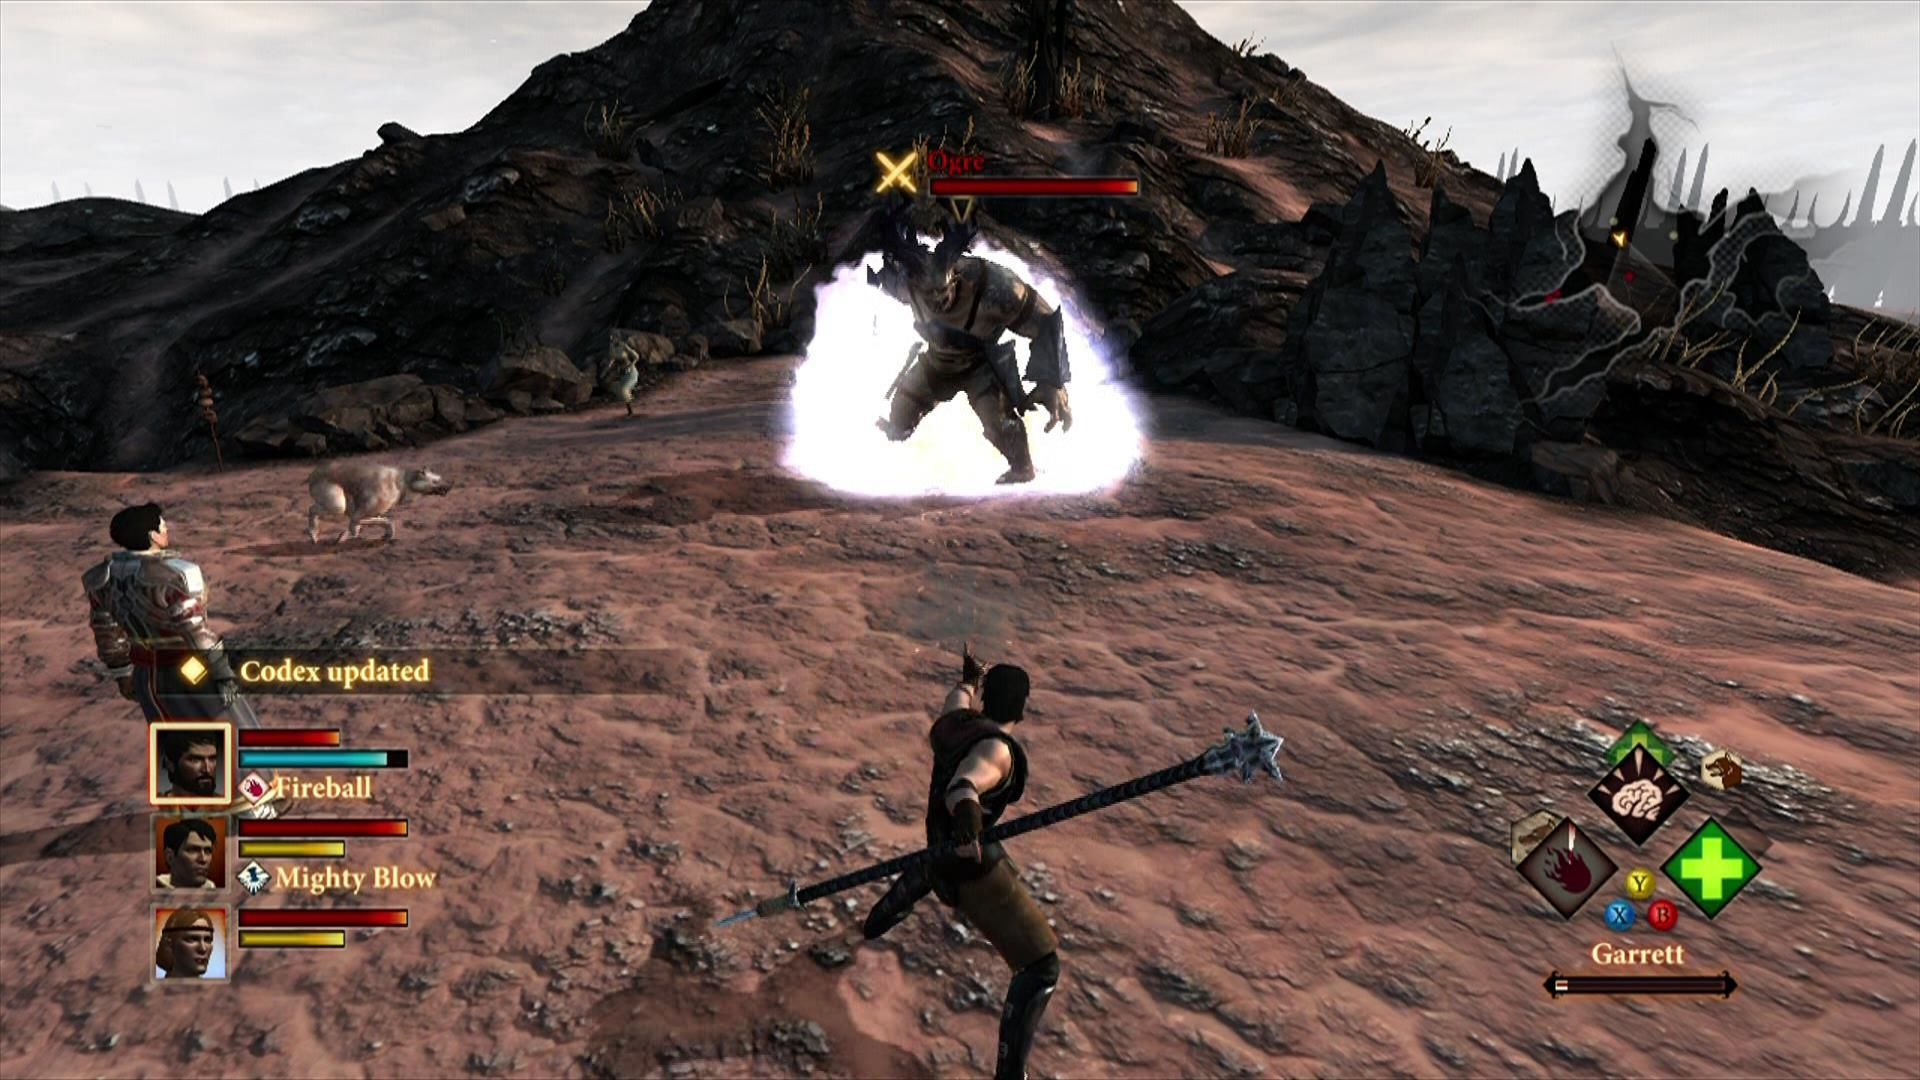 Dragon Age II Xbox 360 An ogre, your first dangerous enemy